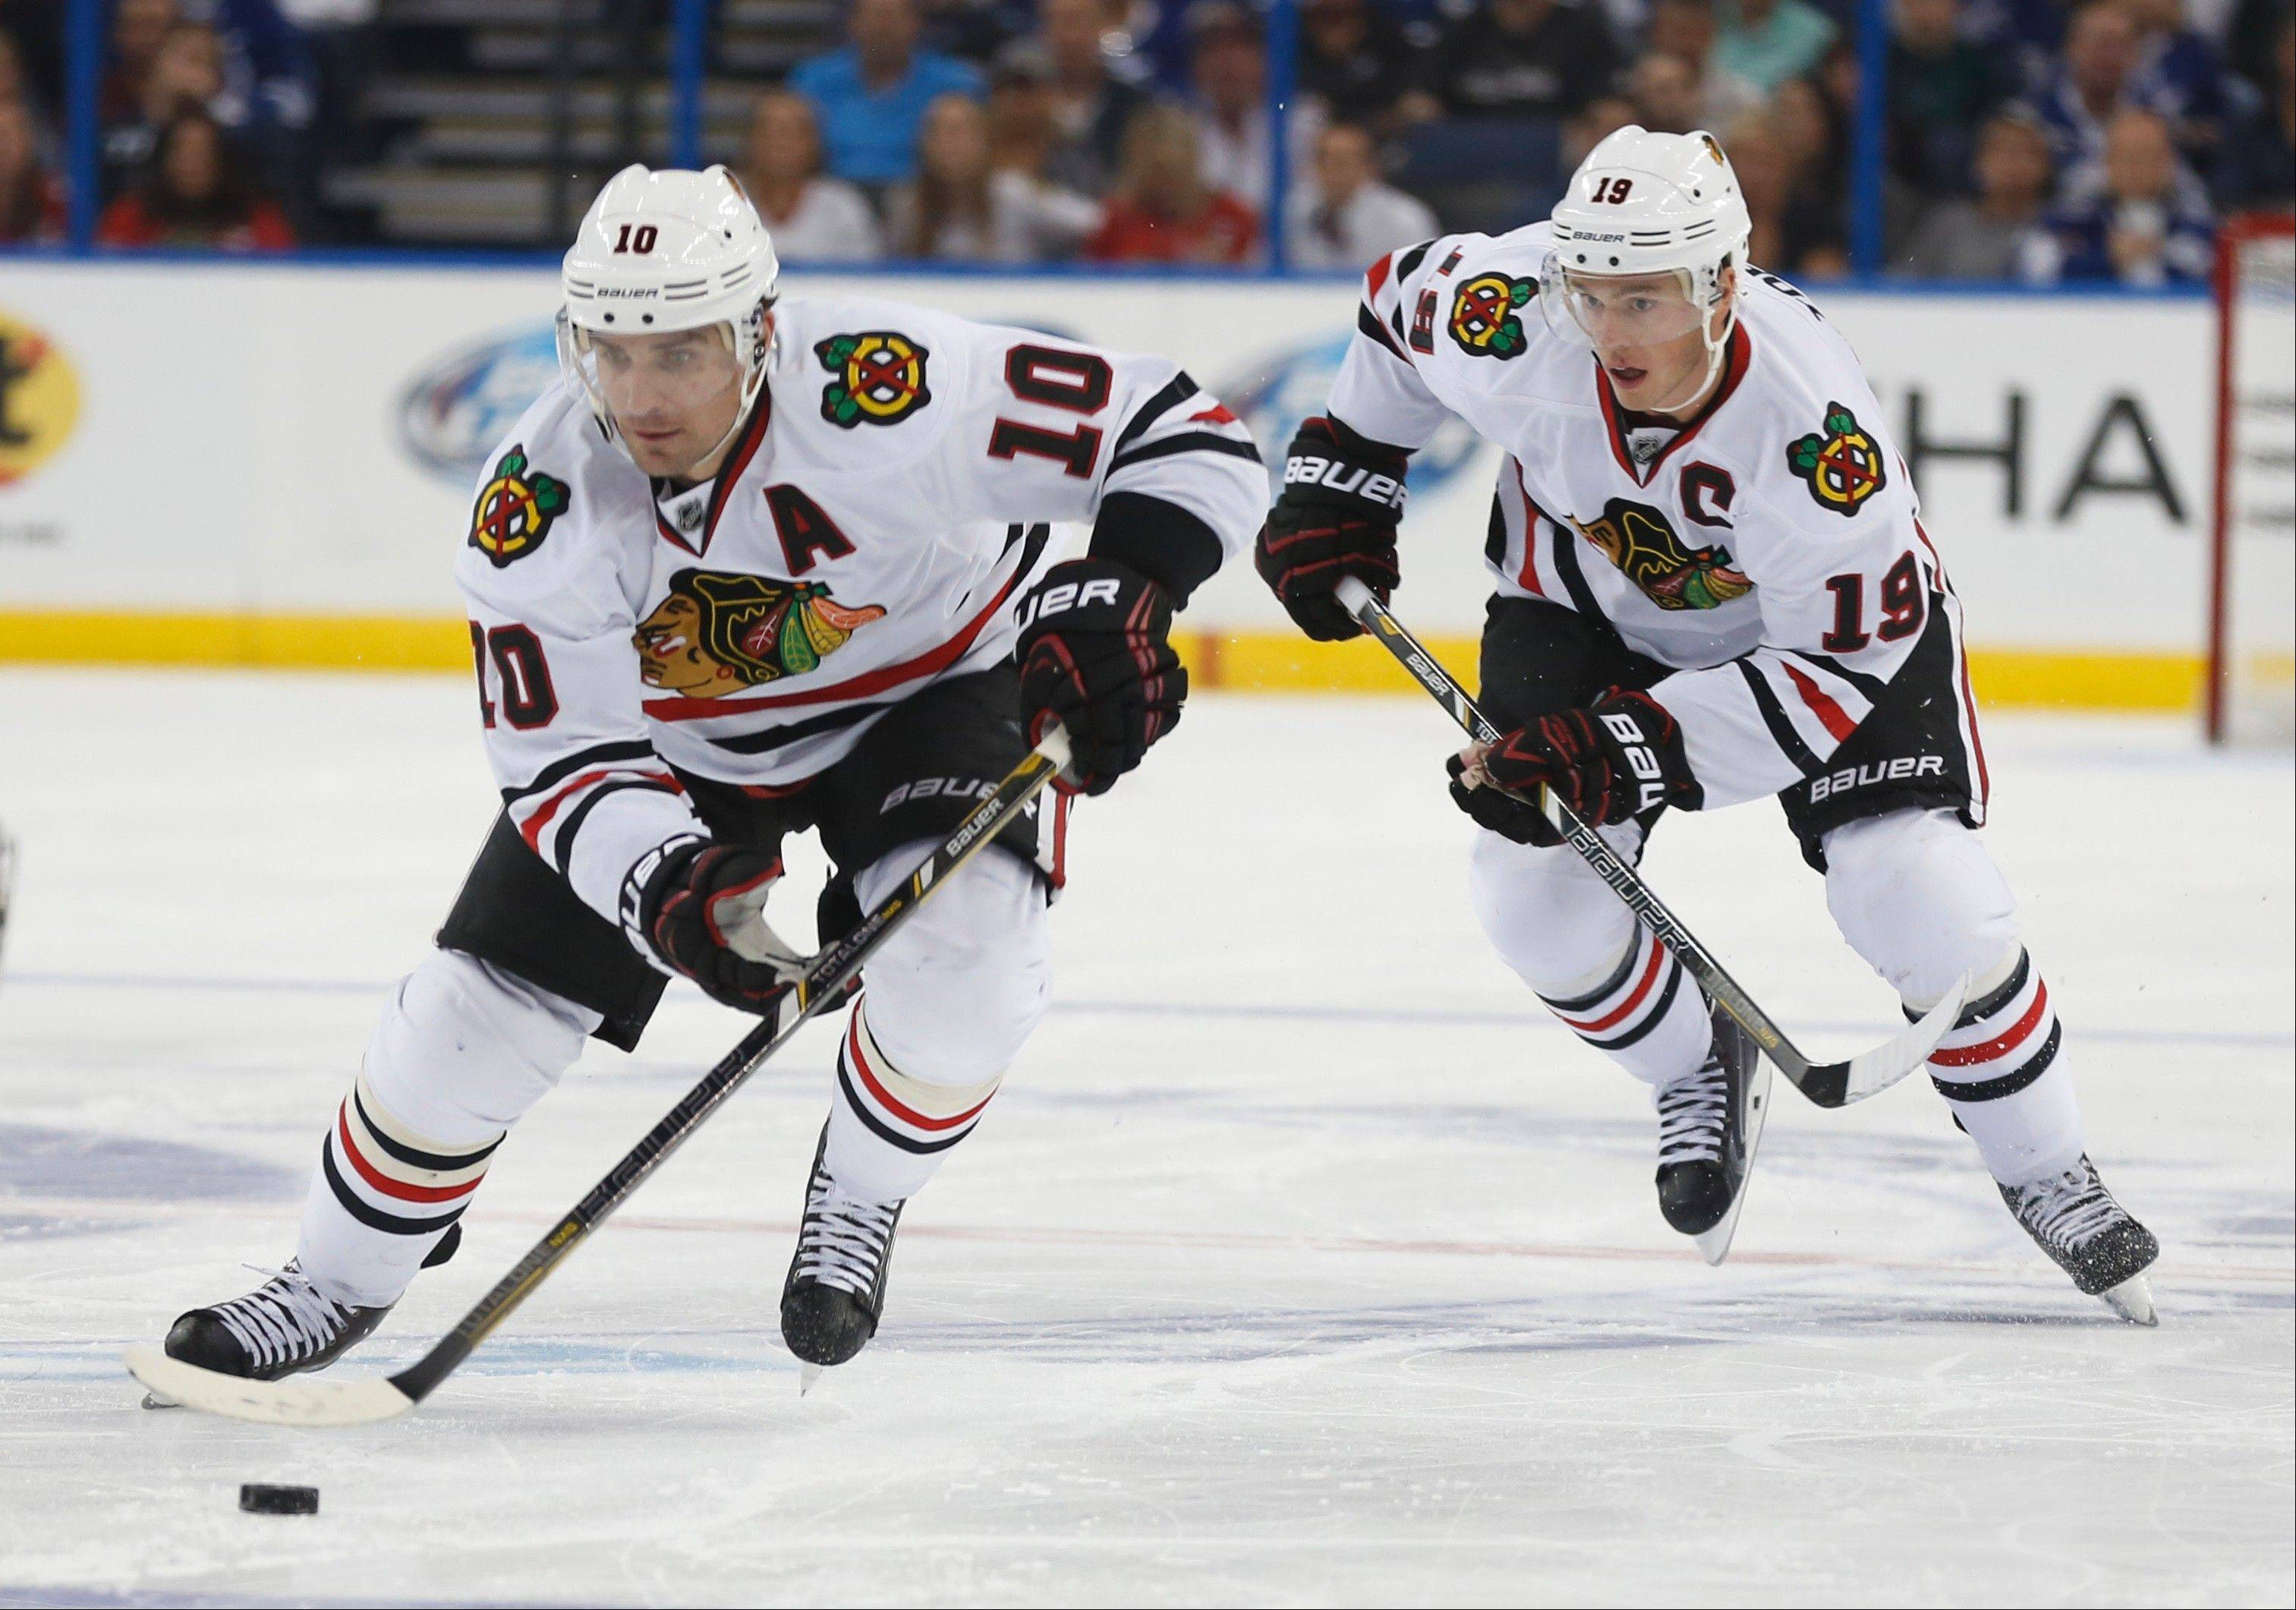 Hawks center Patrick Sharp will fulfill his dream in less than a month when he skates for Team Canada in the Olympics.